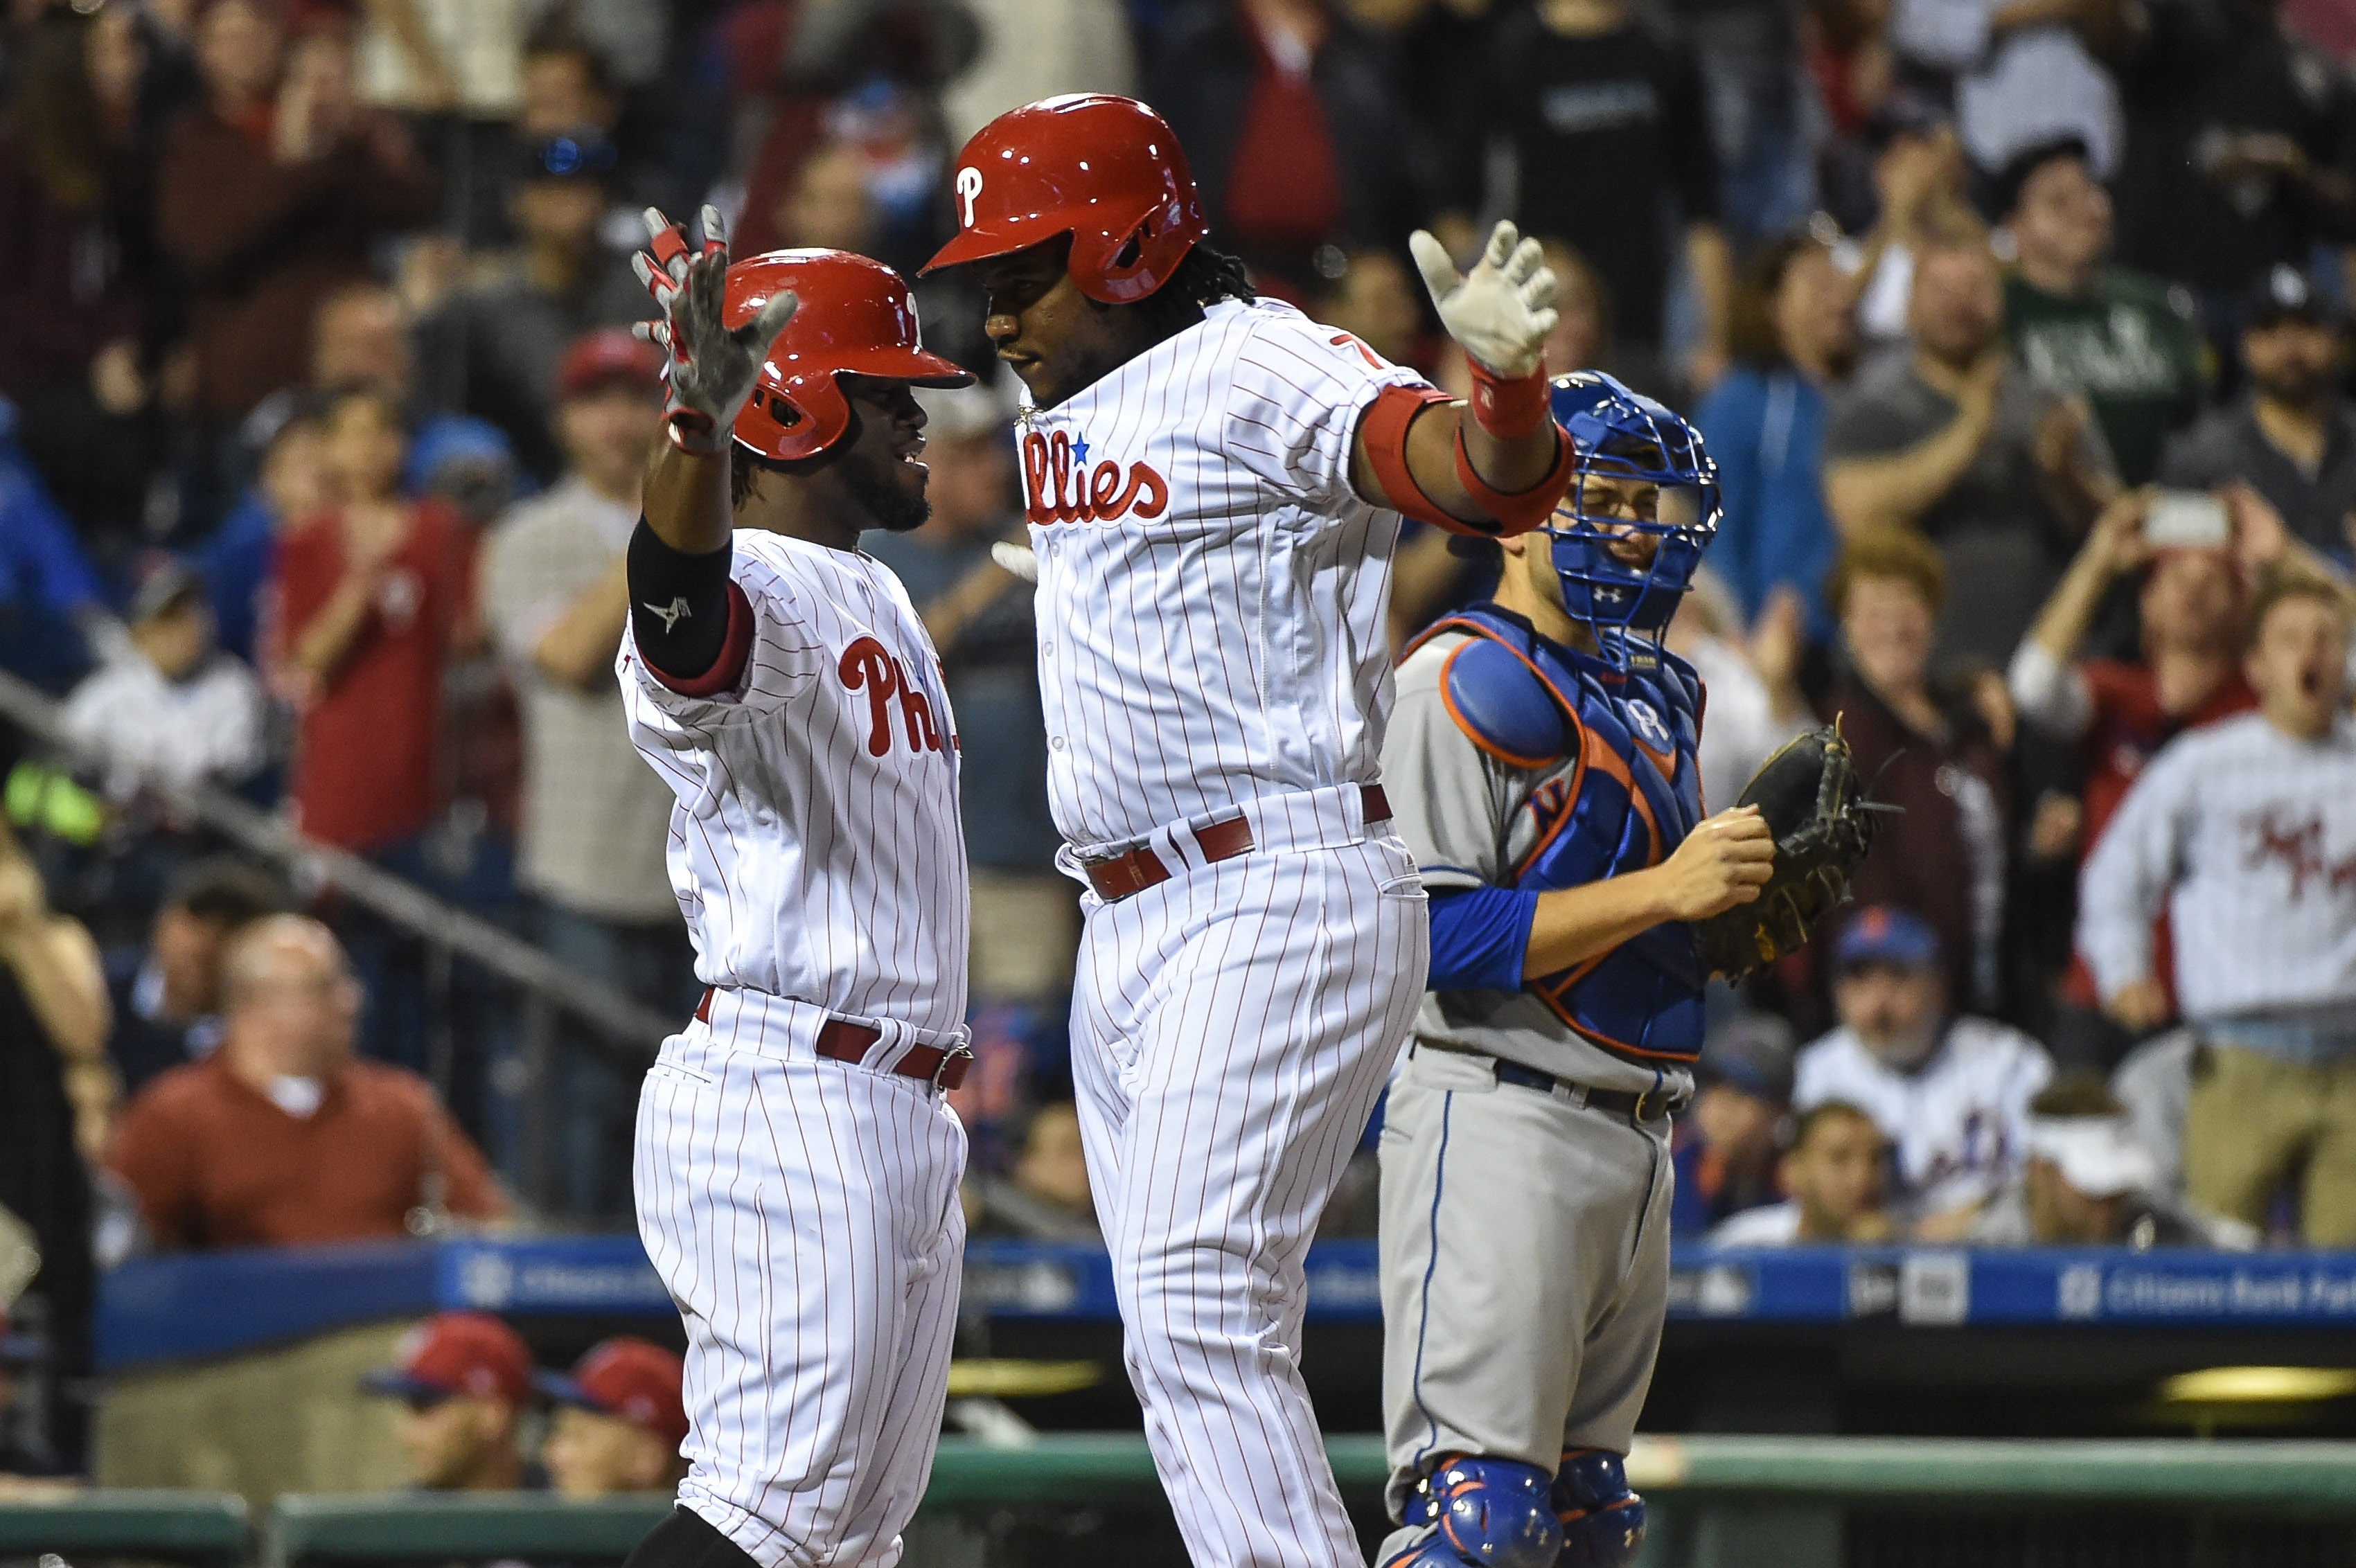 Hernandez's two-run homer lifts Phils over Nats